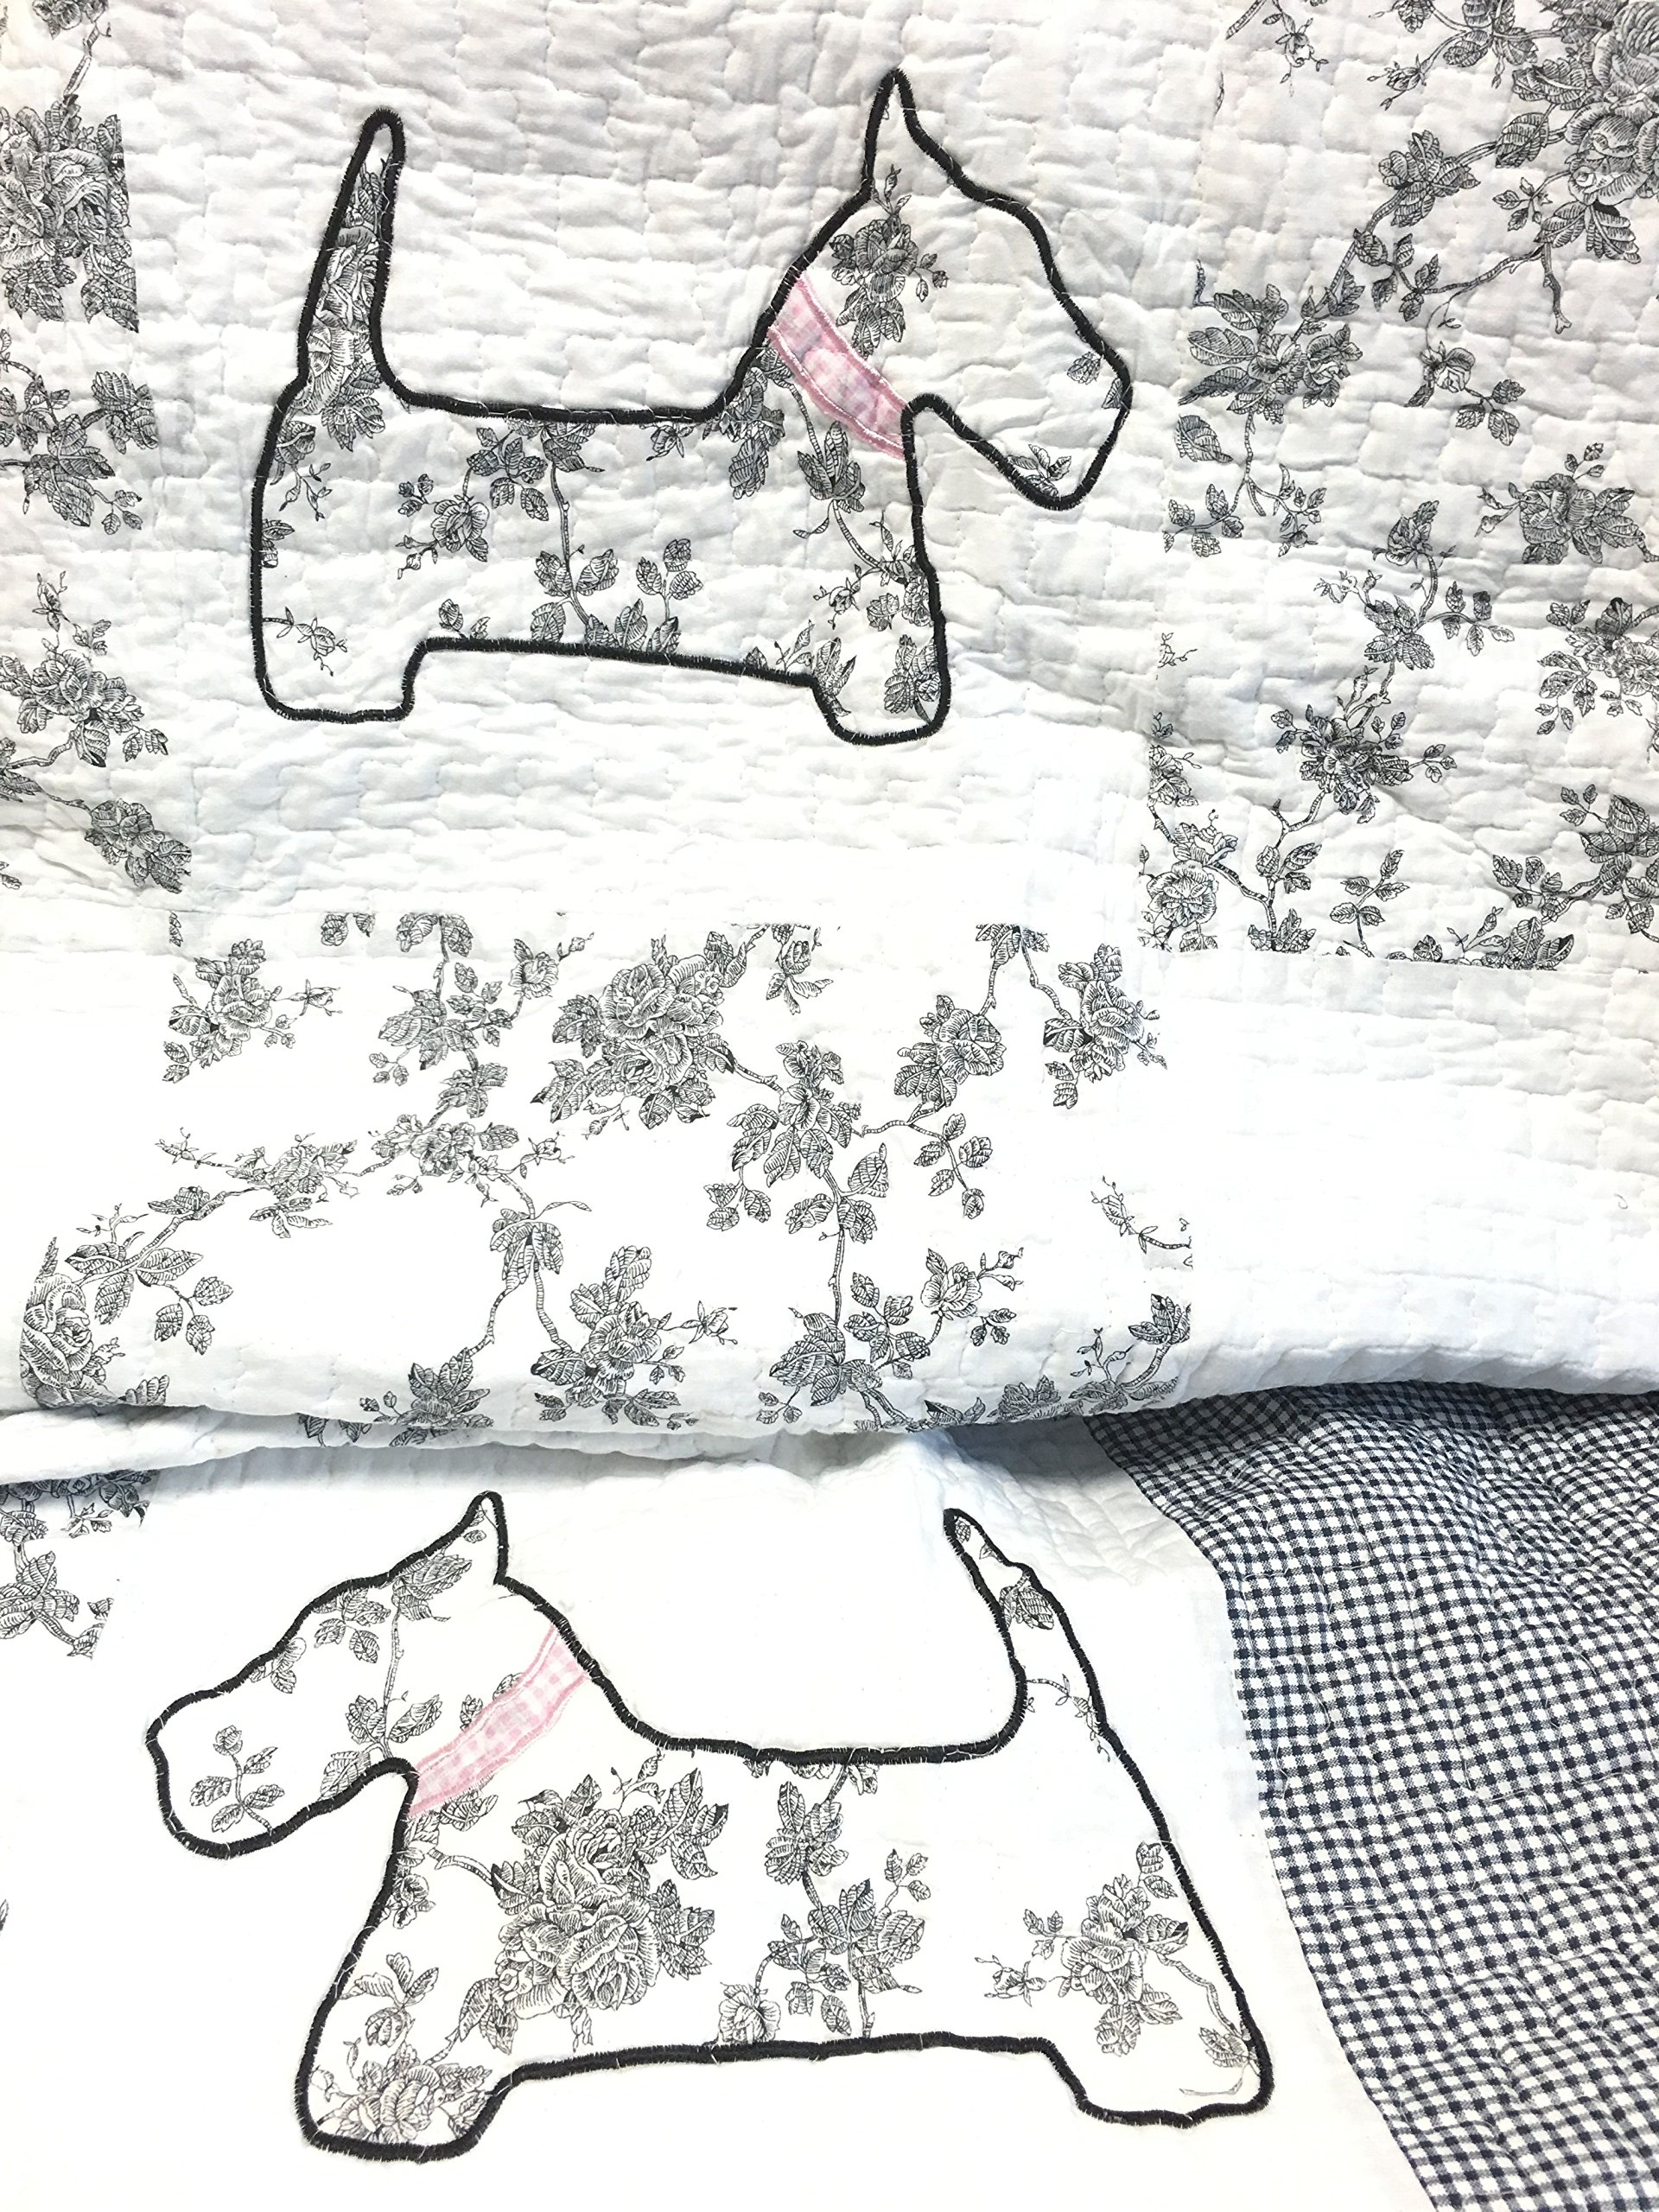 Cozy Line Home Fashions Scottie Pup Pink White Grey Dog Flower Pattern Printed Patchwork Cotton Bedding Quilt Set Coverlet Bedspreads(Grey/White, Queen - 3 Piece: 1 Quilt + 2 Standard Shams) by Cozy Line Home Fashions (Image #2)